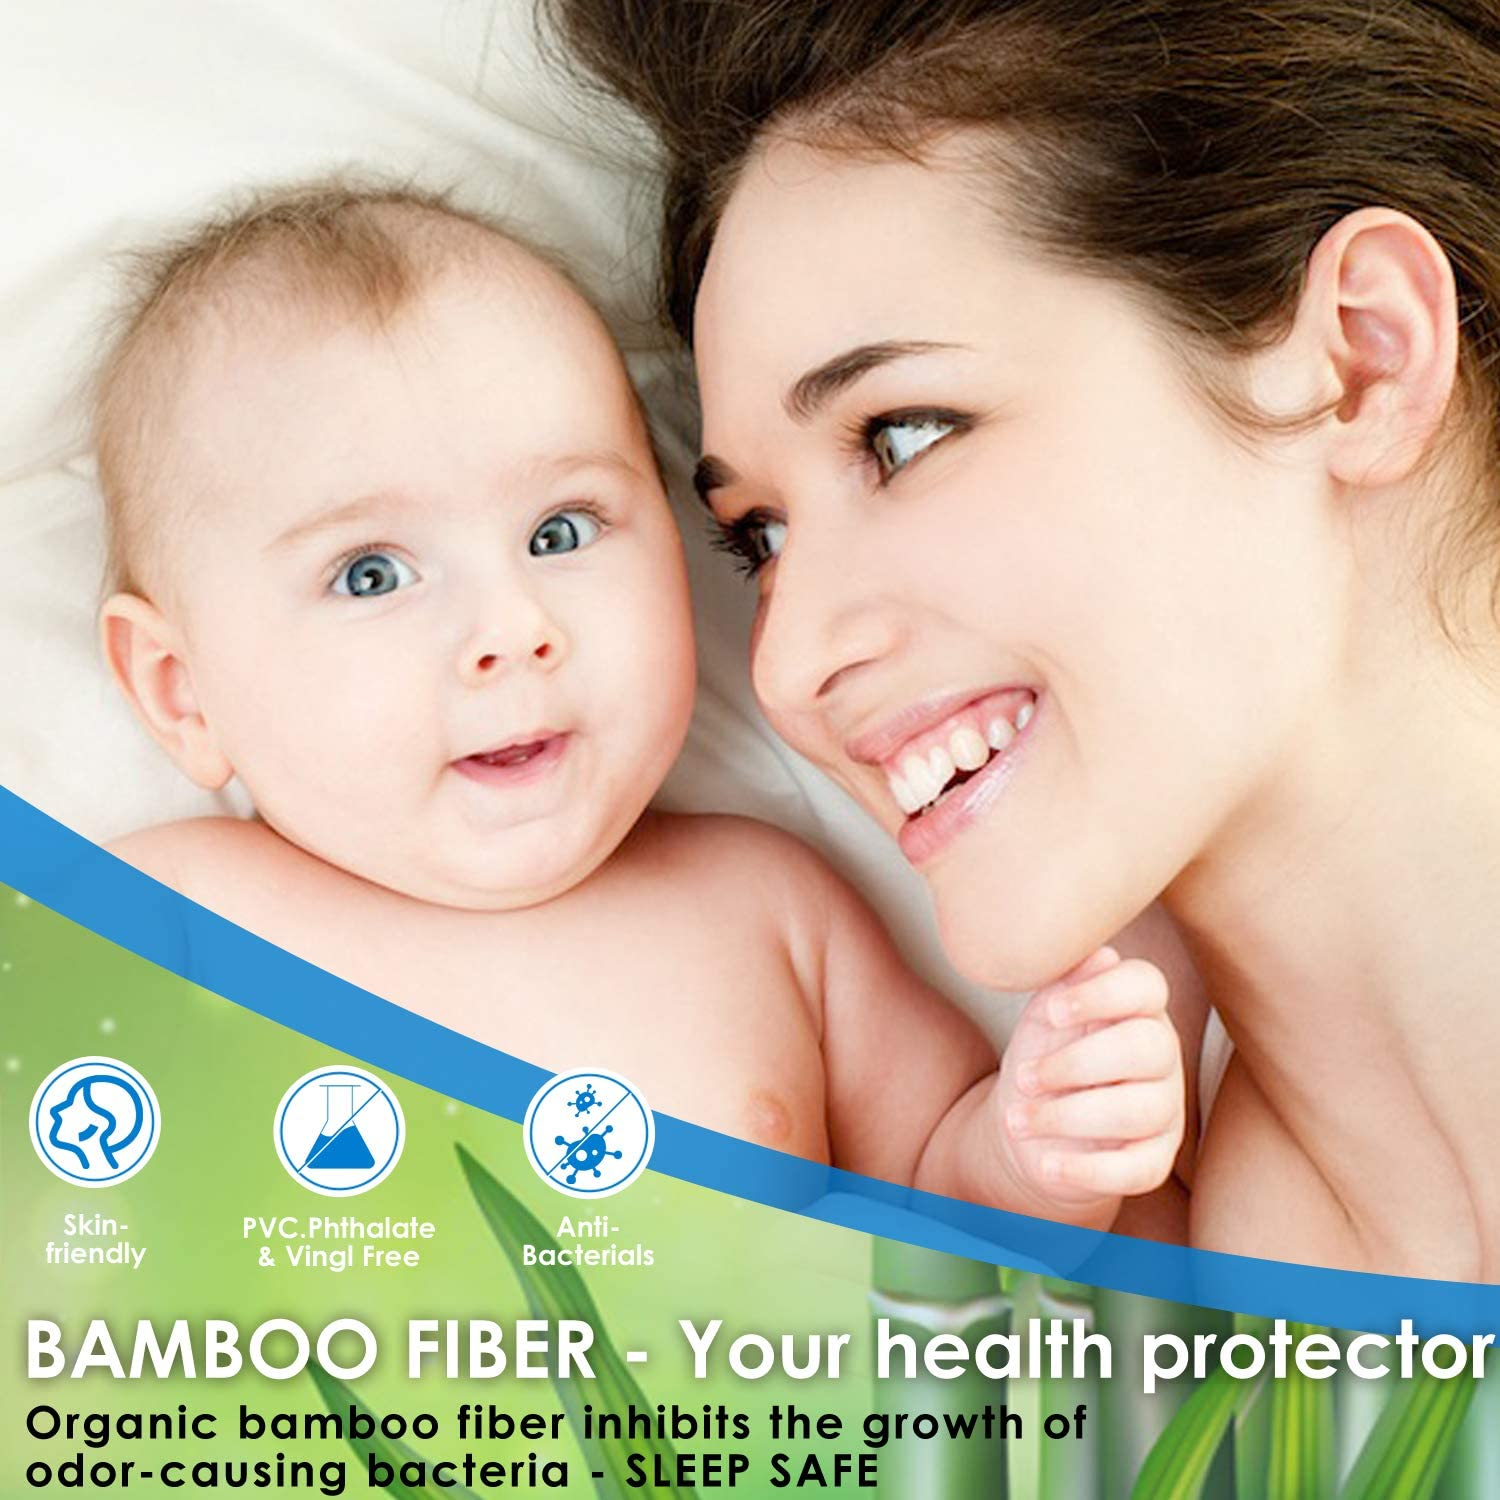 Breathable Noiseless Mattress Protection Fitted 8-21 Deep Pocket Mattress Pad Hypoallergenic Vinyl Free Twin Size Mattress Protector Waterproof Bamboo Cooling Mattress Cover